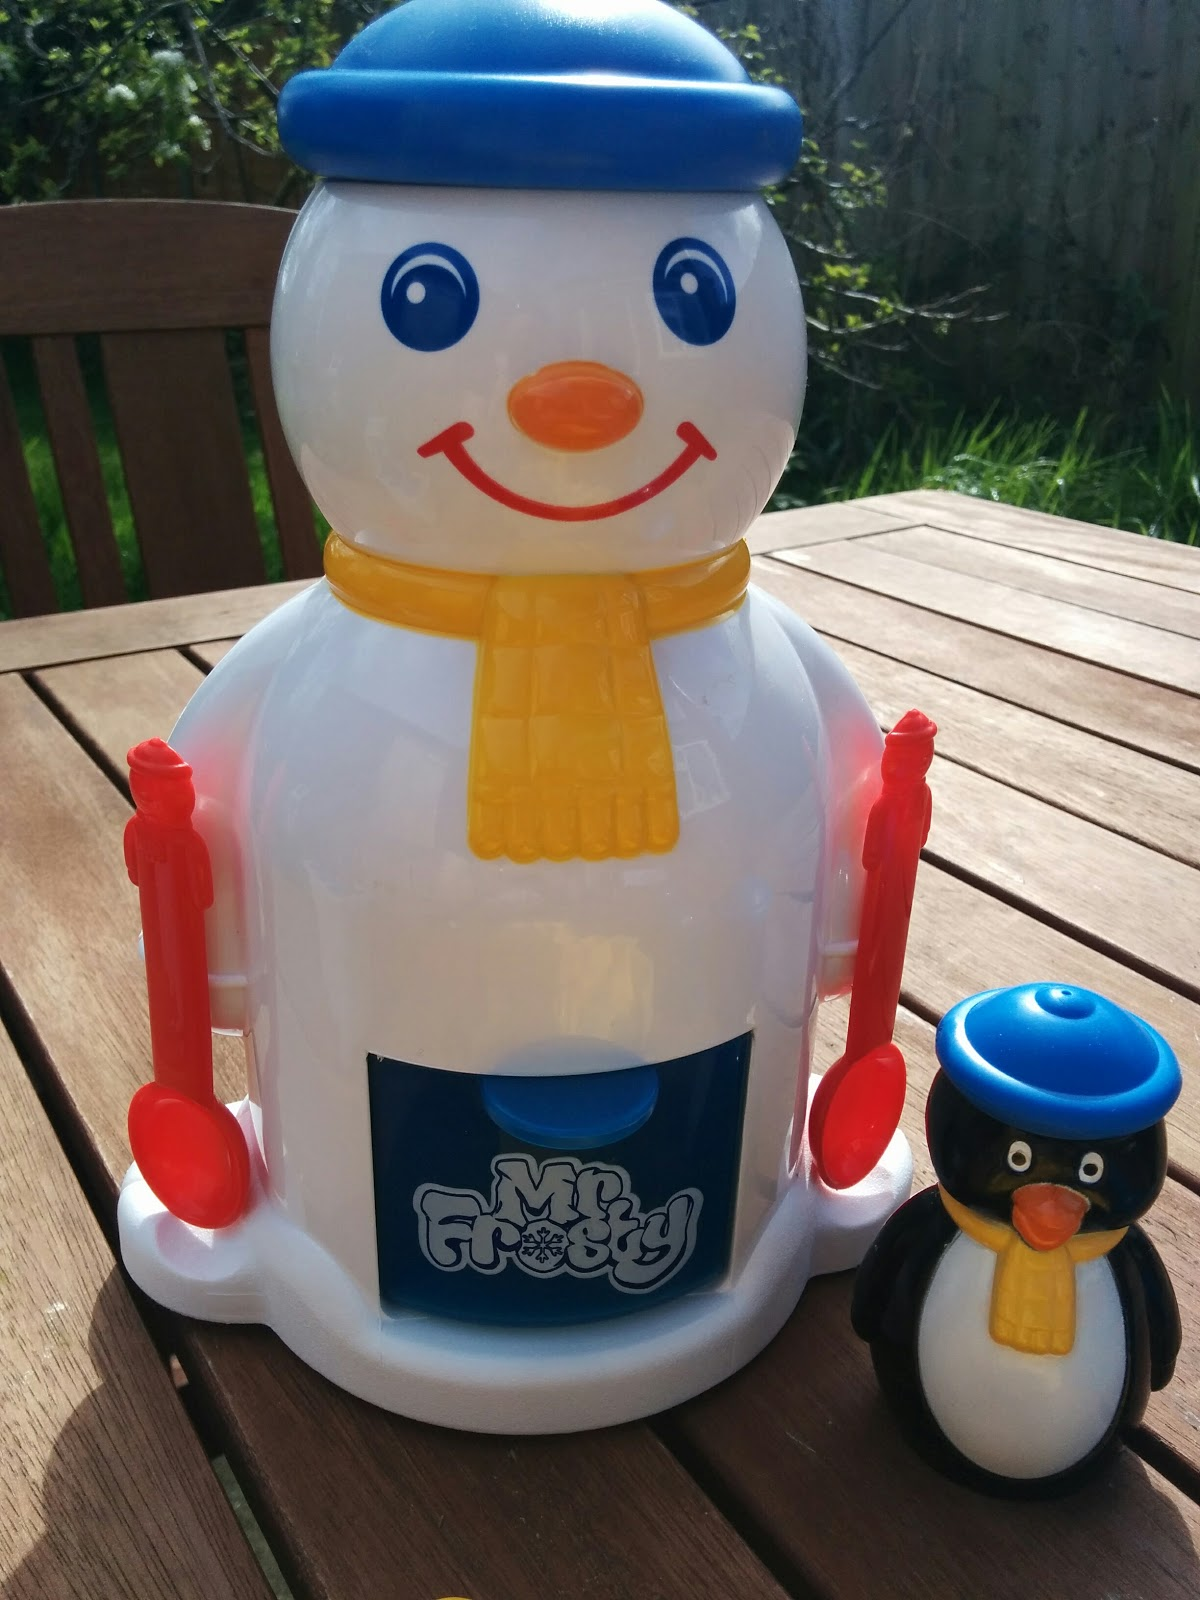 A Mothers Ramblings: Mr Frosty Is Back and He's AMAZING! #Review